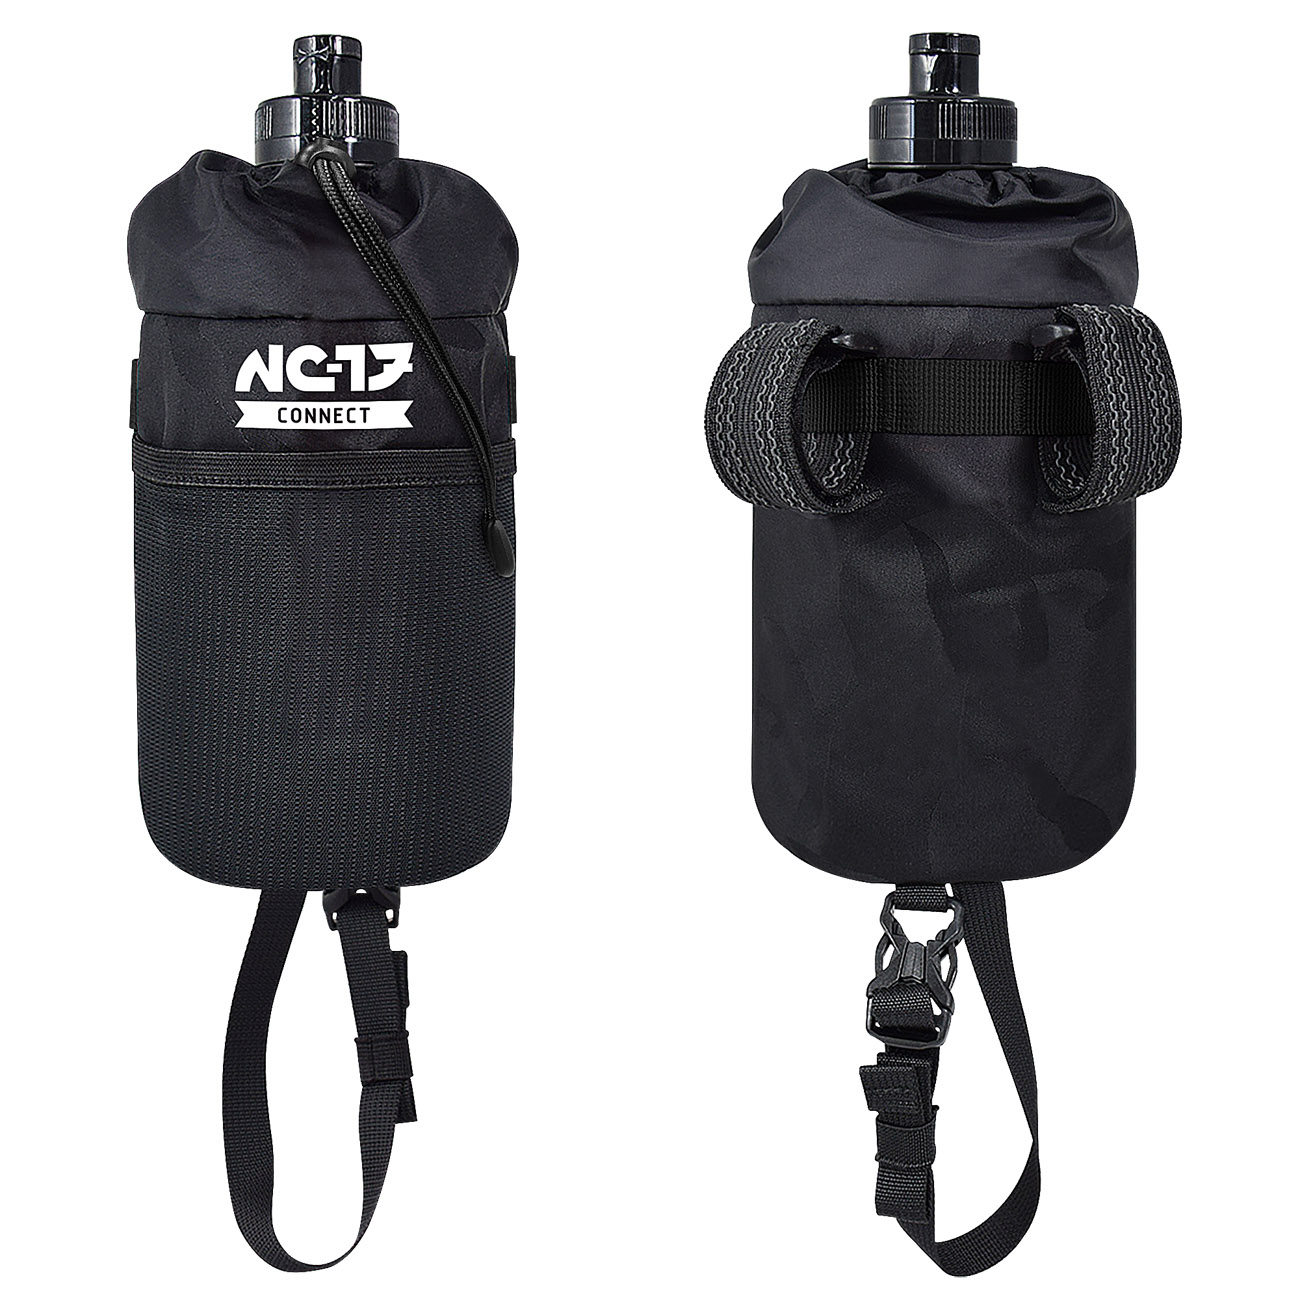 NC-17 Connect Storage Bag<br/>Stem Bag, Lenker-/Vorbautasche, Nylon, schwarz<br/>